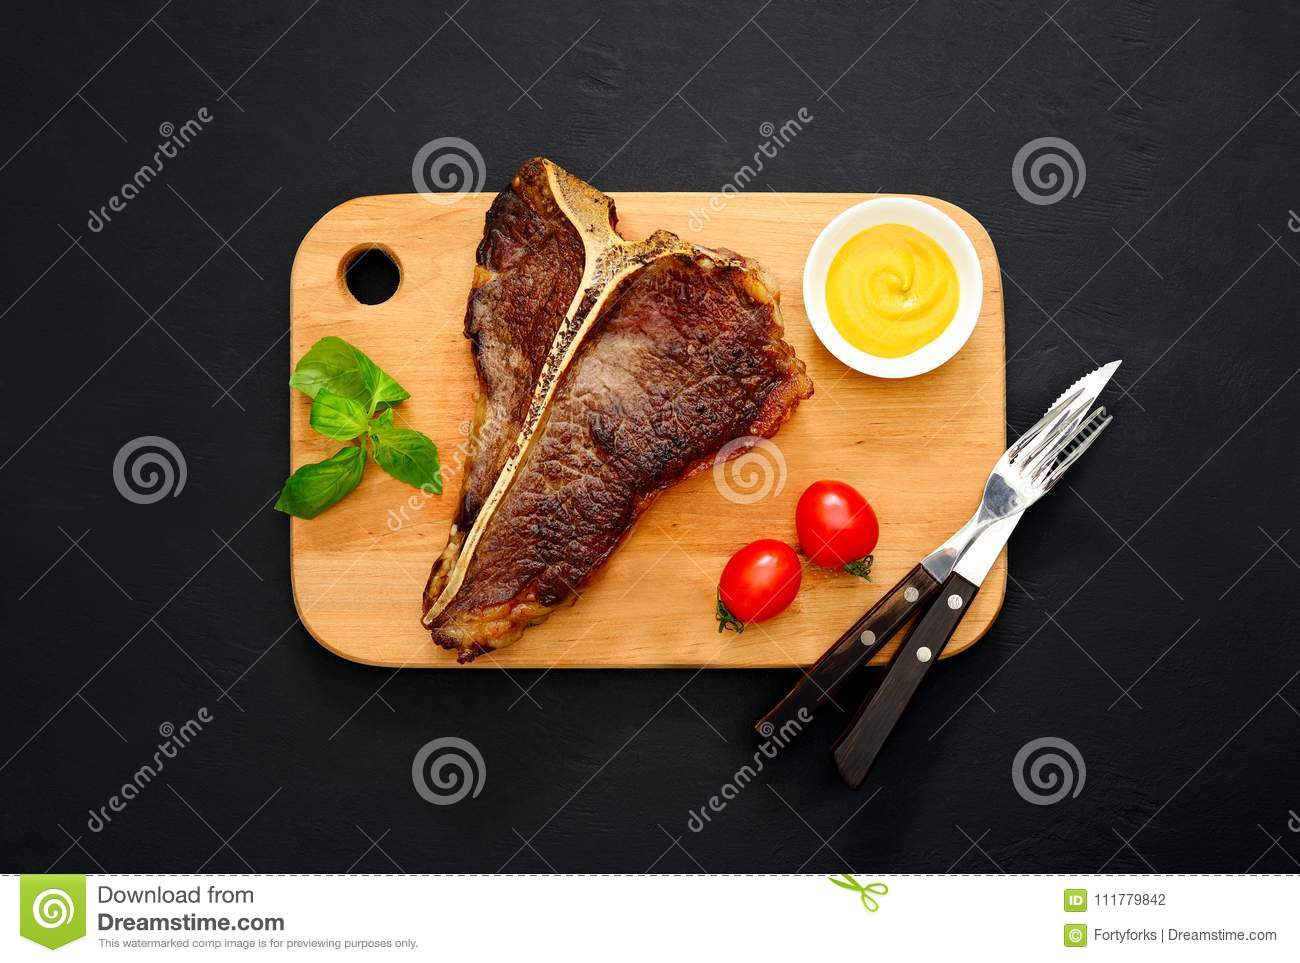 T-bone steak served and ready to eat